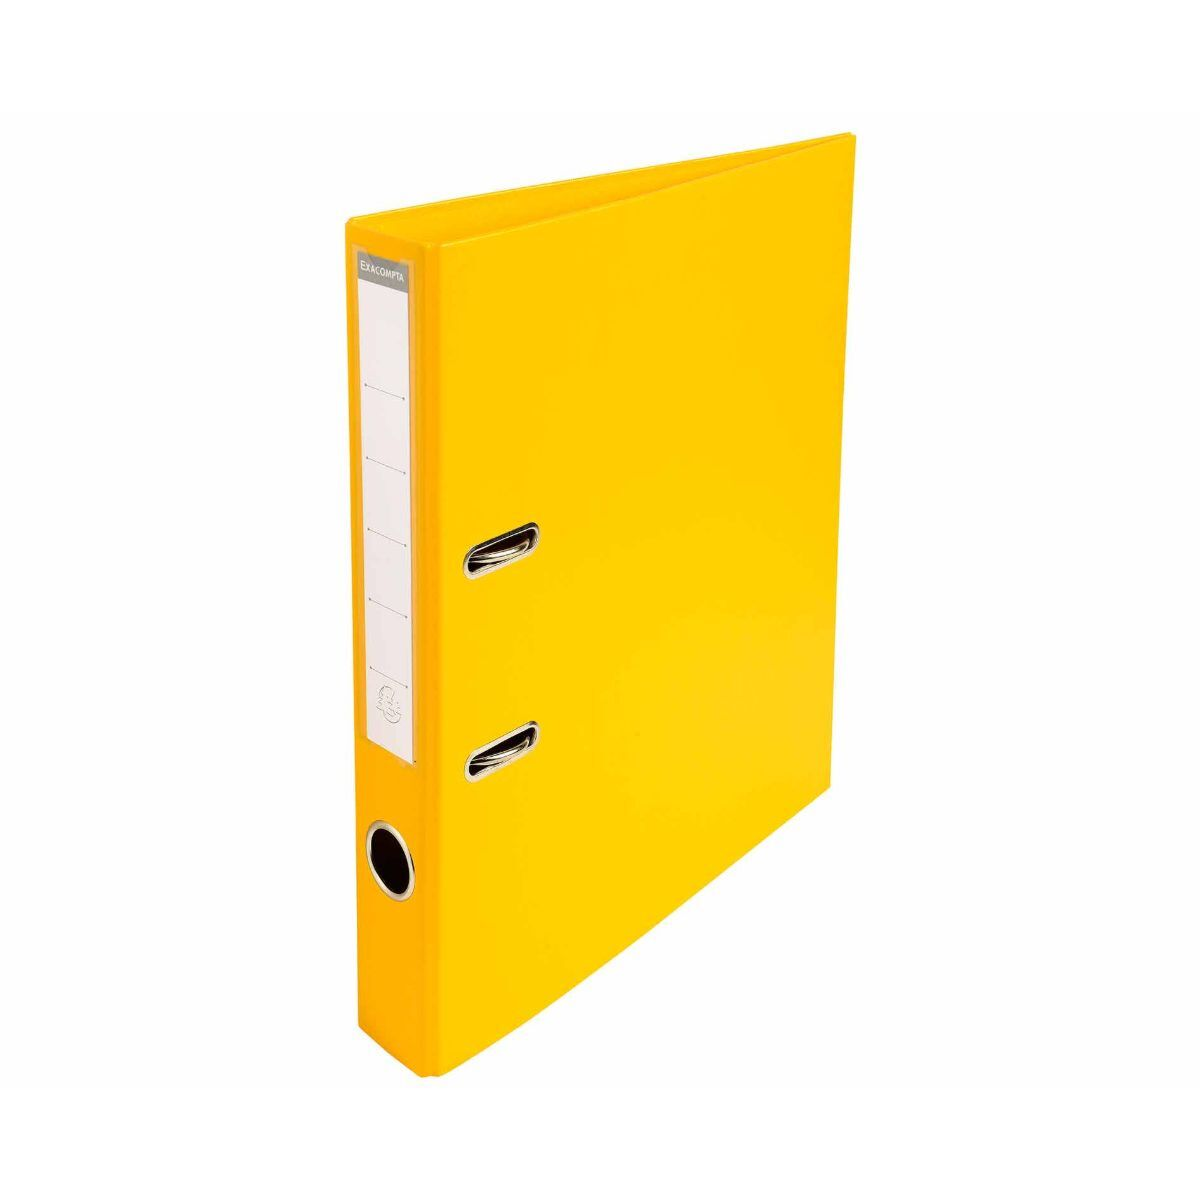 Exacompta PremTouch A4 Lever Arch File 50mm Pack of 10 Yellow